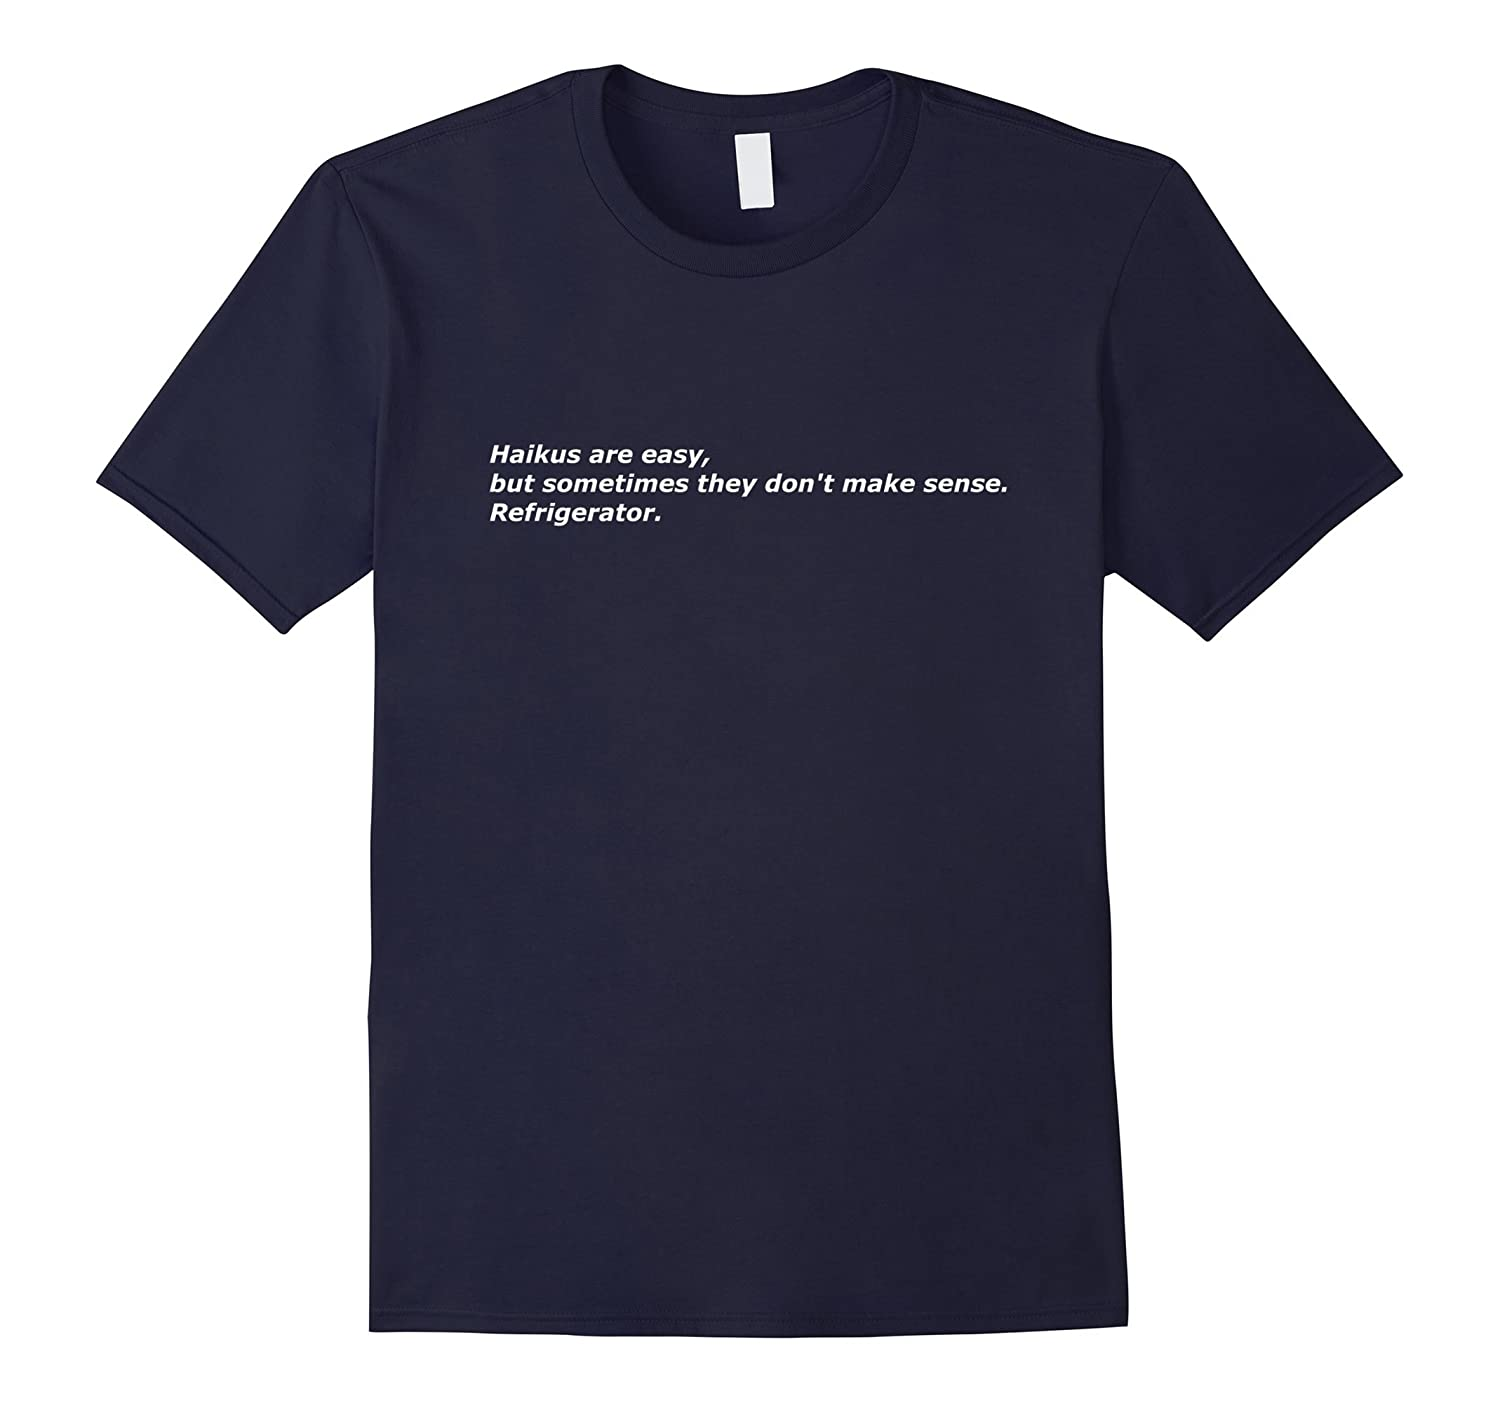 Haikus are easy, refrigerator joke - Funny Shirt White Text-FL